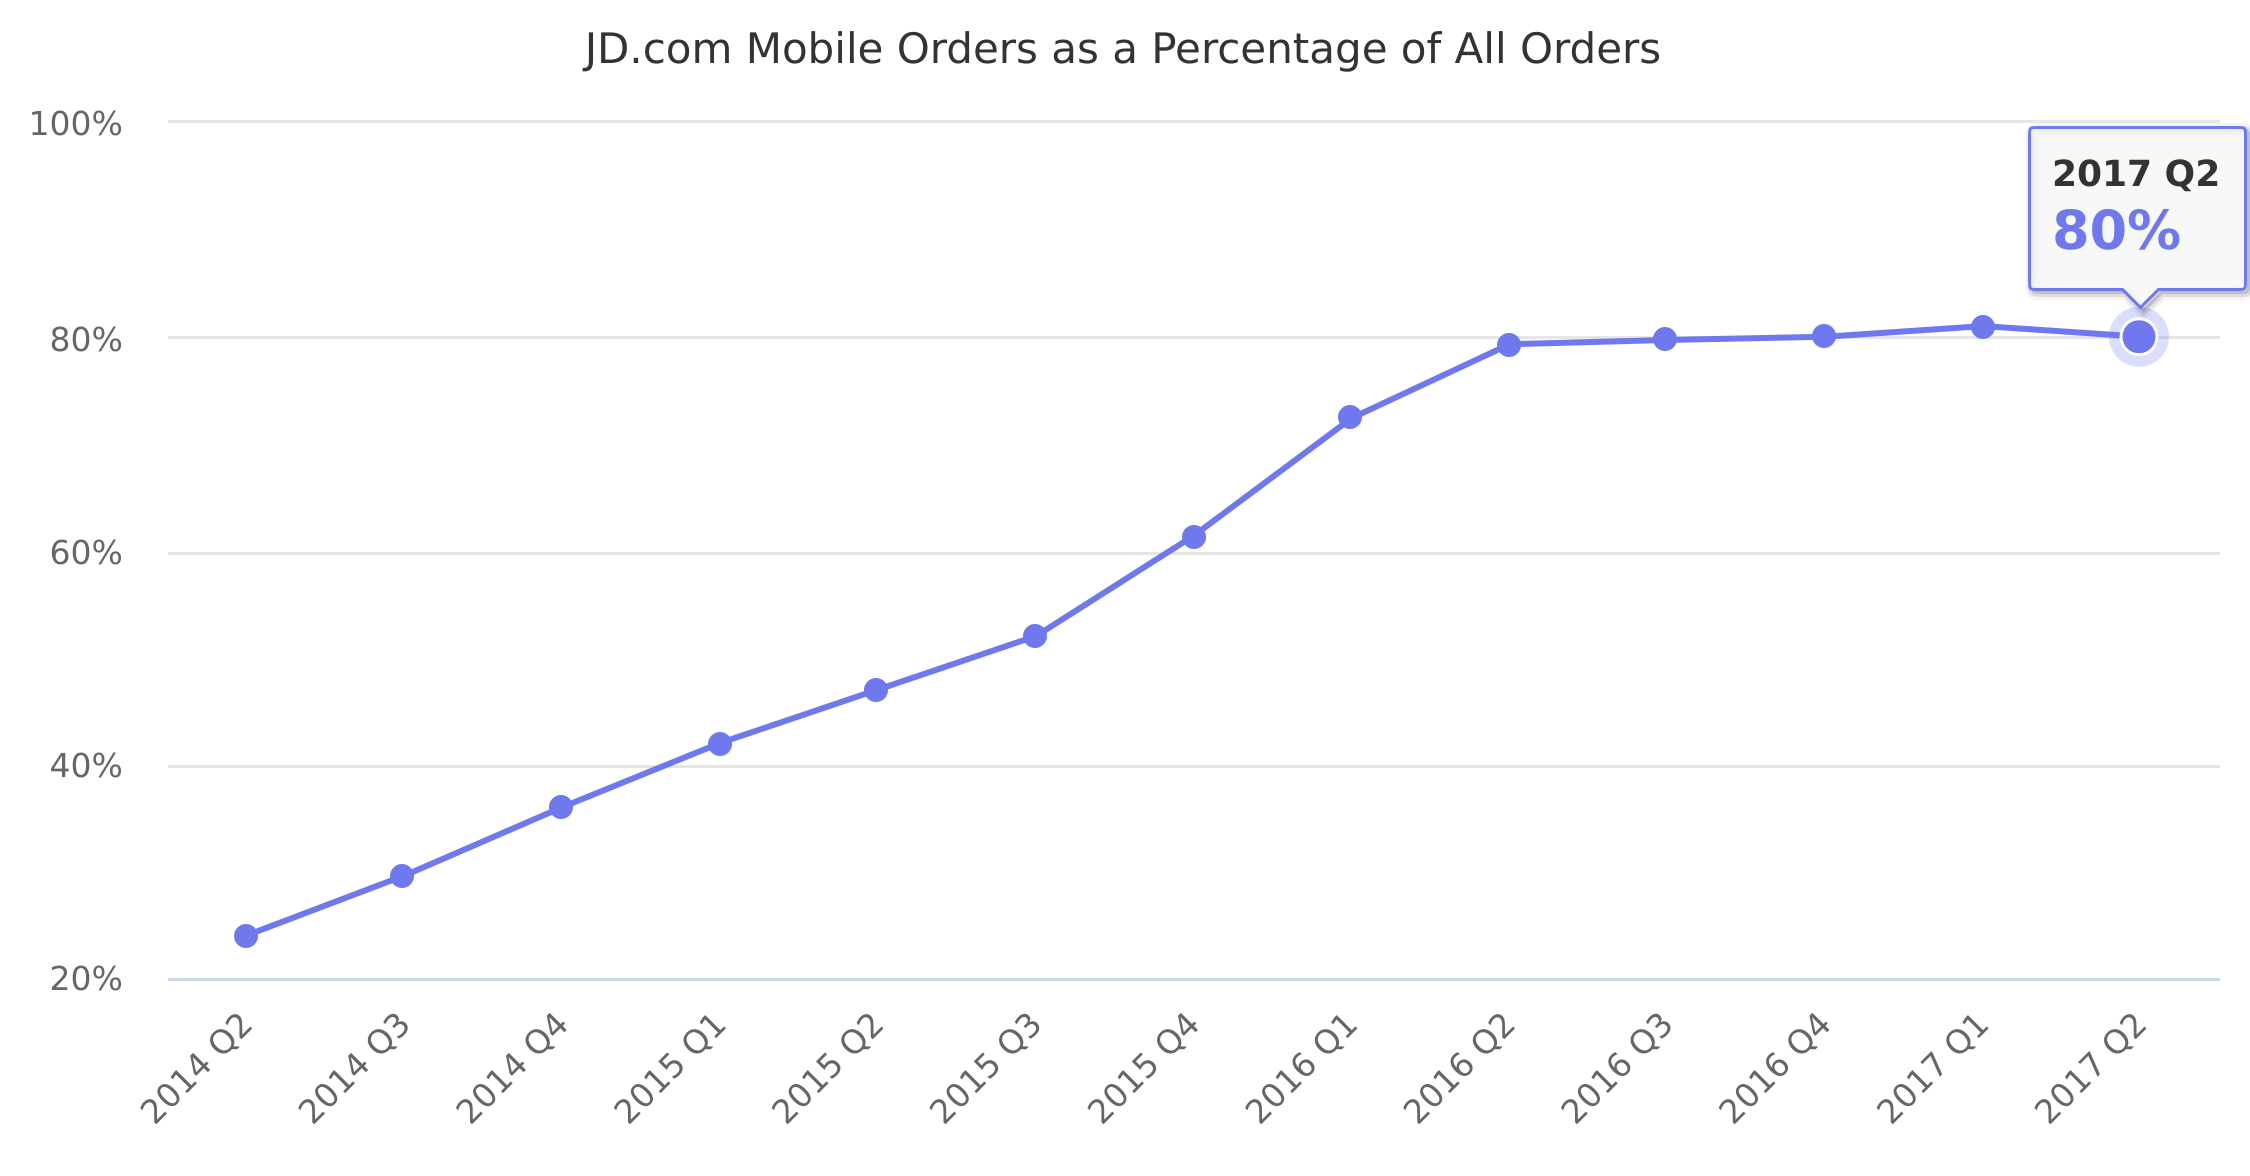 JD.com Mobile Orders as a Percentage of All Orders 2014-2017